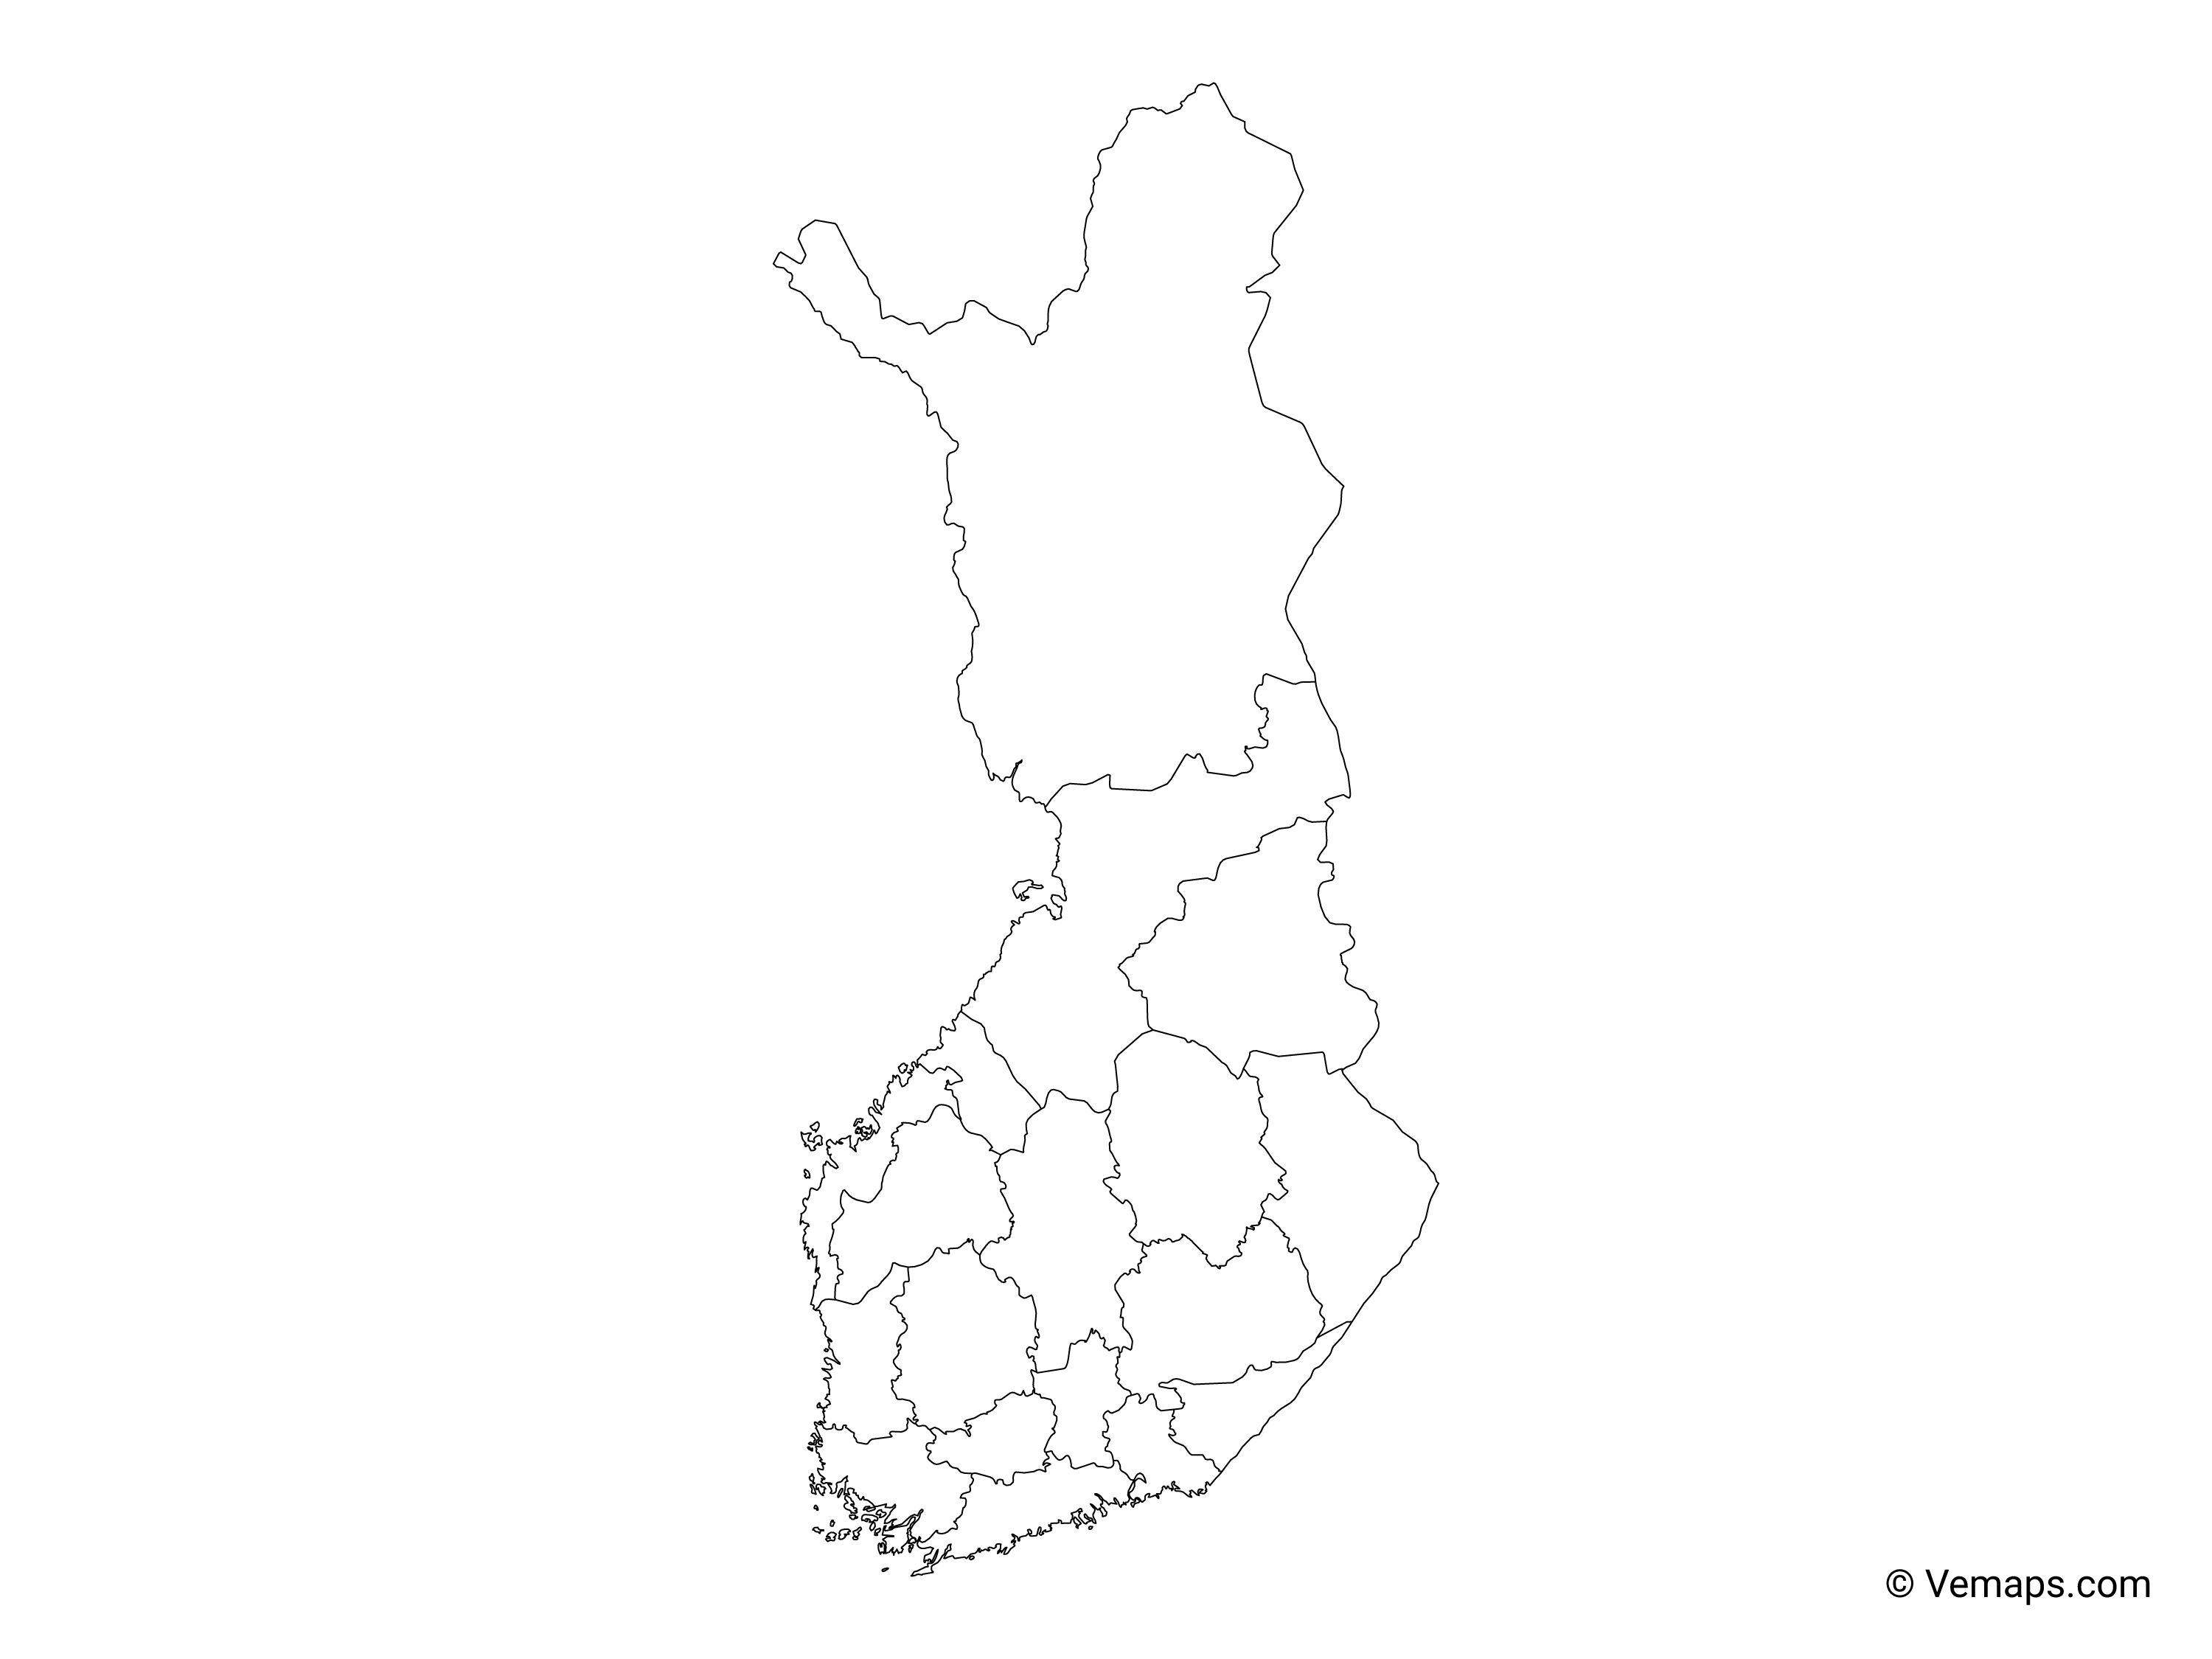 Outline Map of Finland with Regions | Free Vector Maps